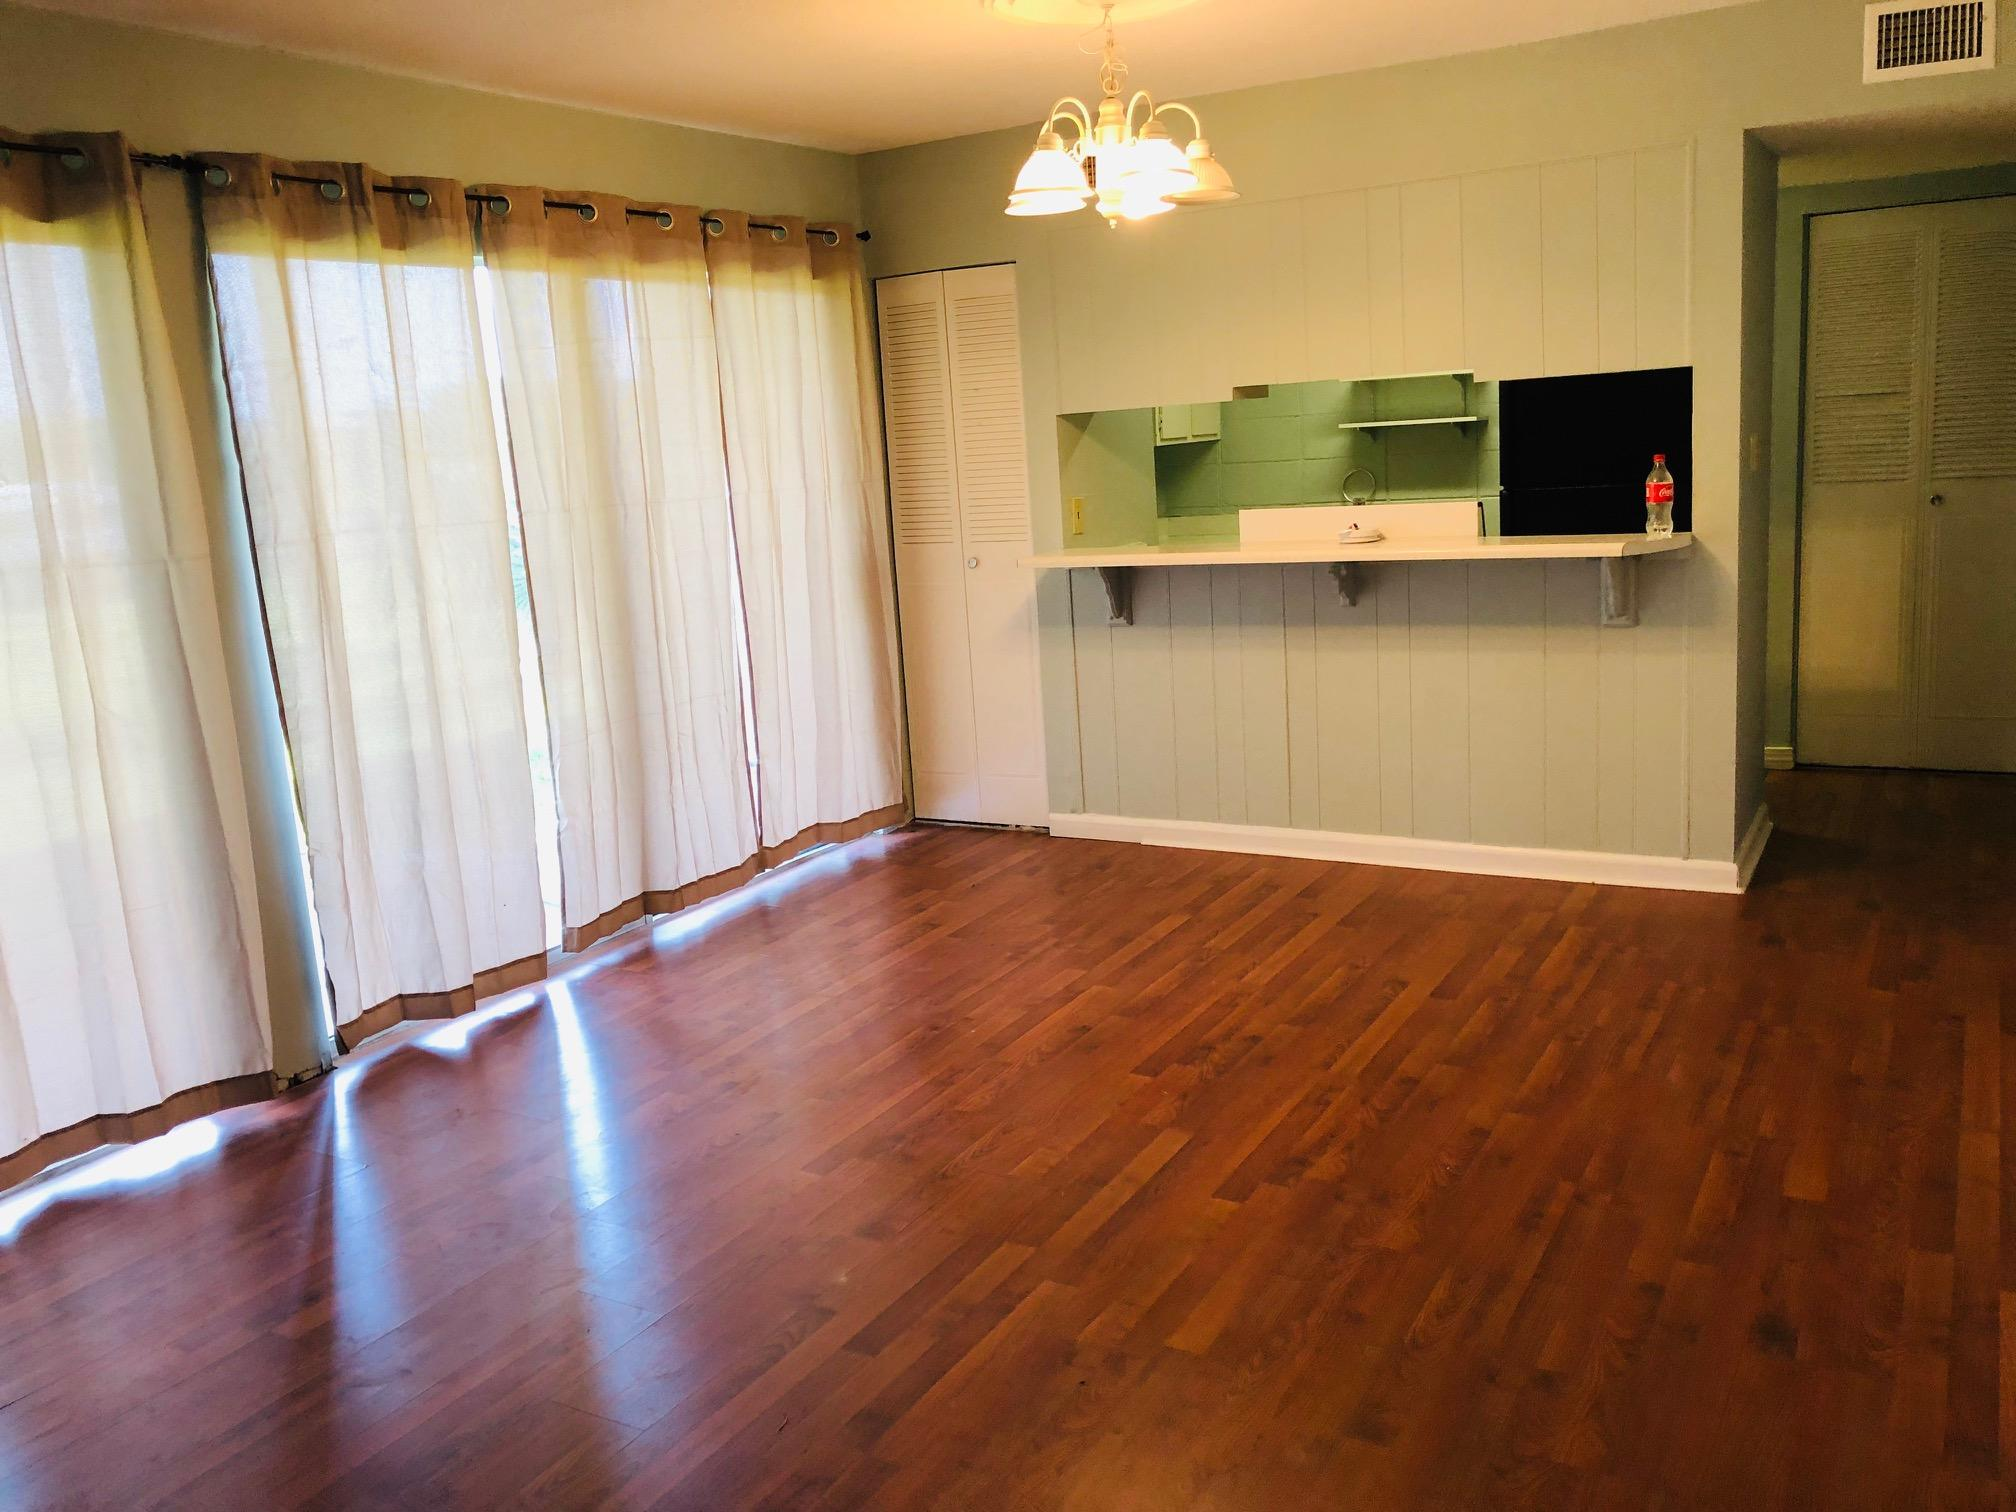 Cute one bedroom condo on the Lake. Easy access first floor. Some updates. Laminate flooring. Freshly painted. Covered Patio.  Amenities Include: 3 Pools, bike racks, Community Room, Tennis, Barbecue Grills, Picnic tables. Close to Beaches, Shopping & Entertainment. The lease ends on 5/31/2019. if purchased prior to the end of the lease. The lease must be honored. Buyer to verify any and all dimensions.